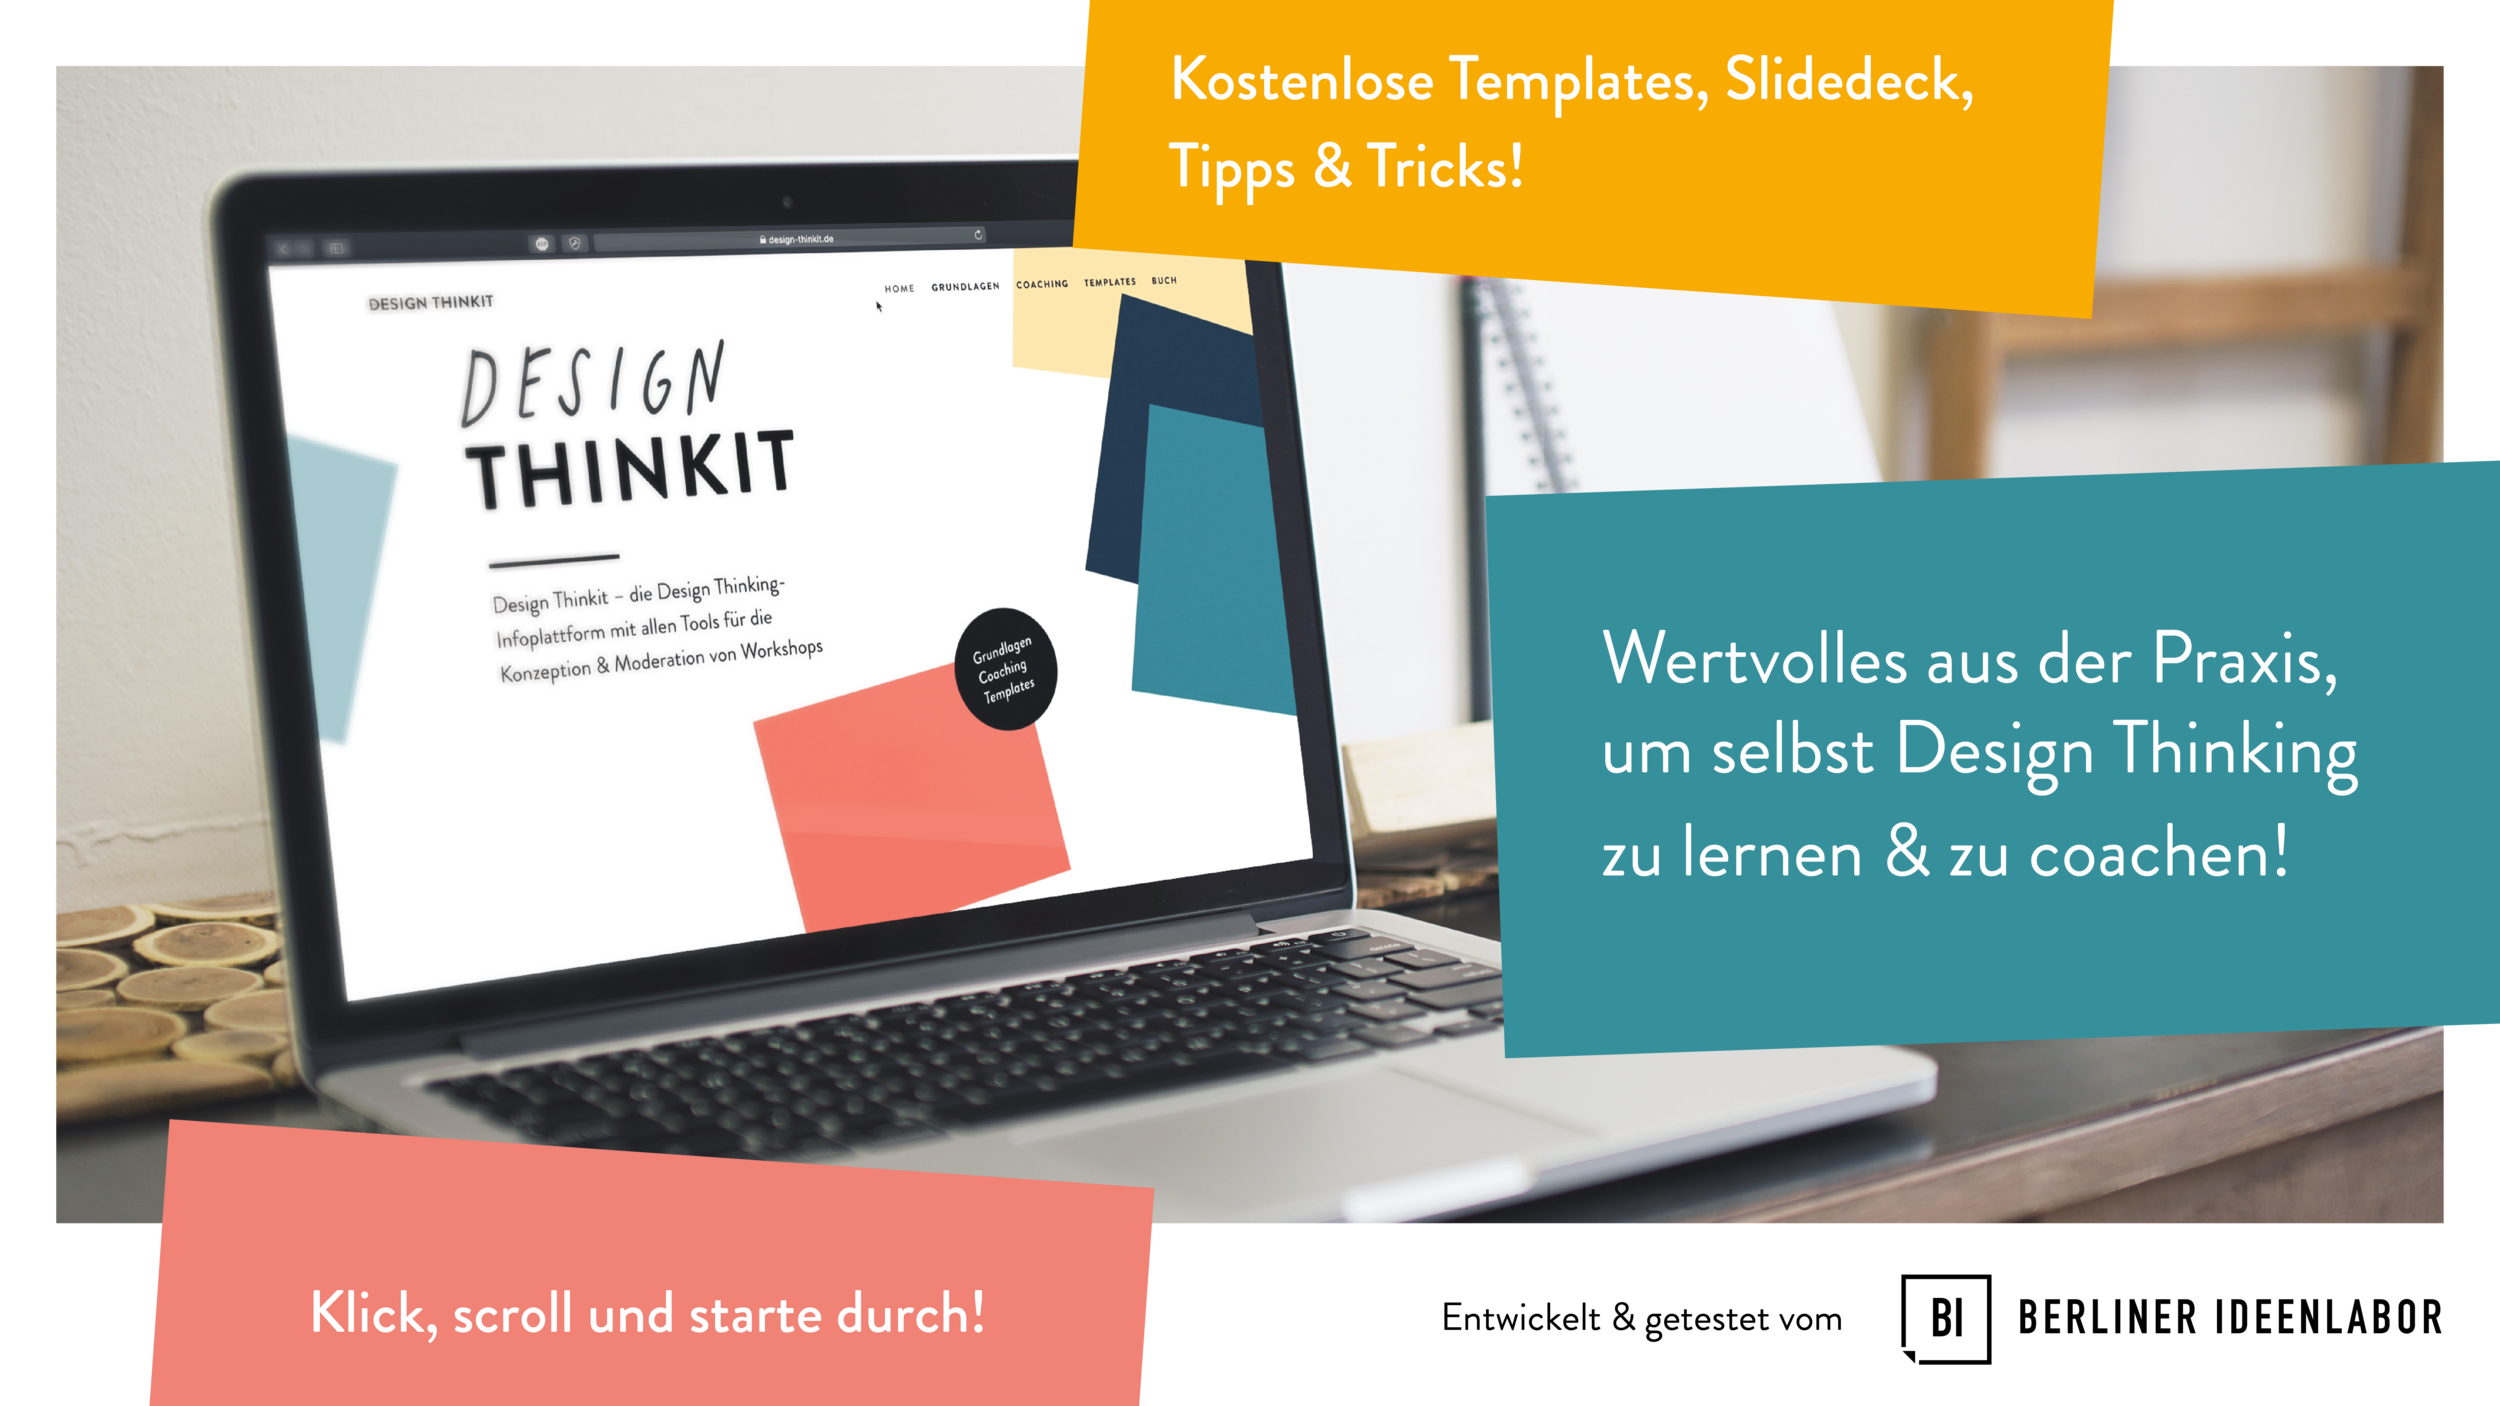 Design Thinkit